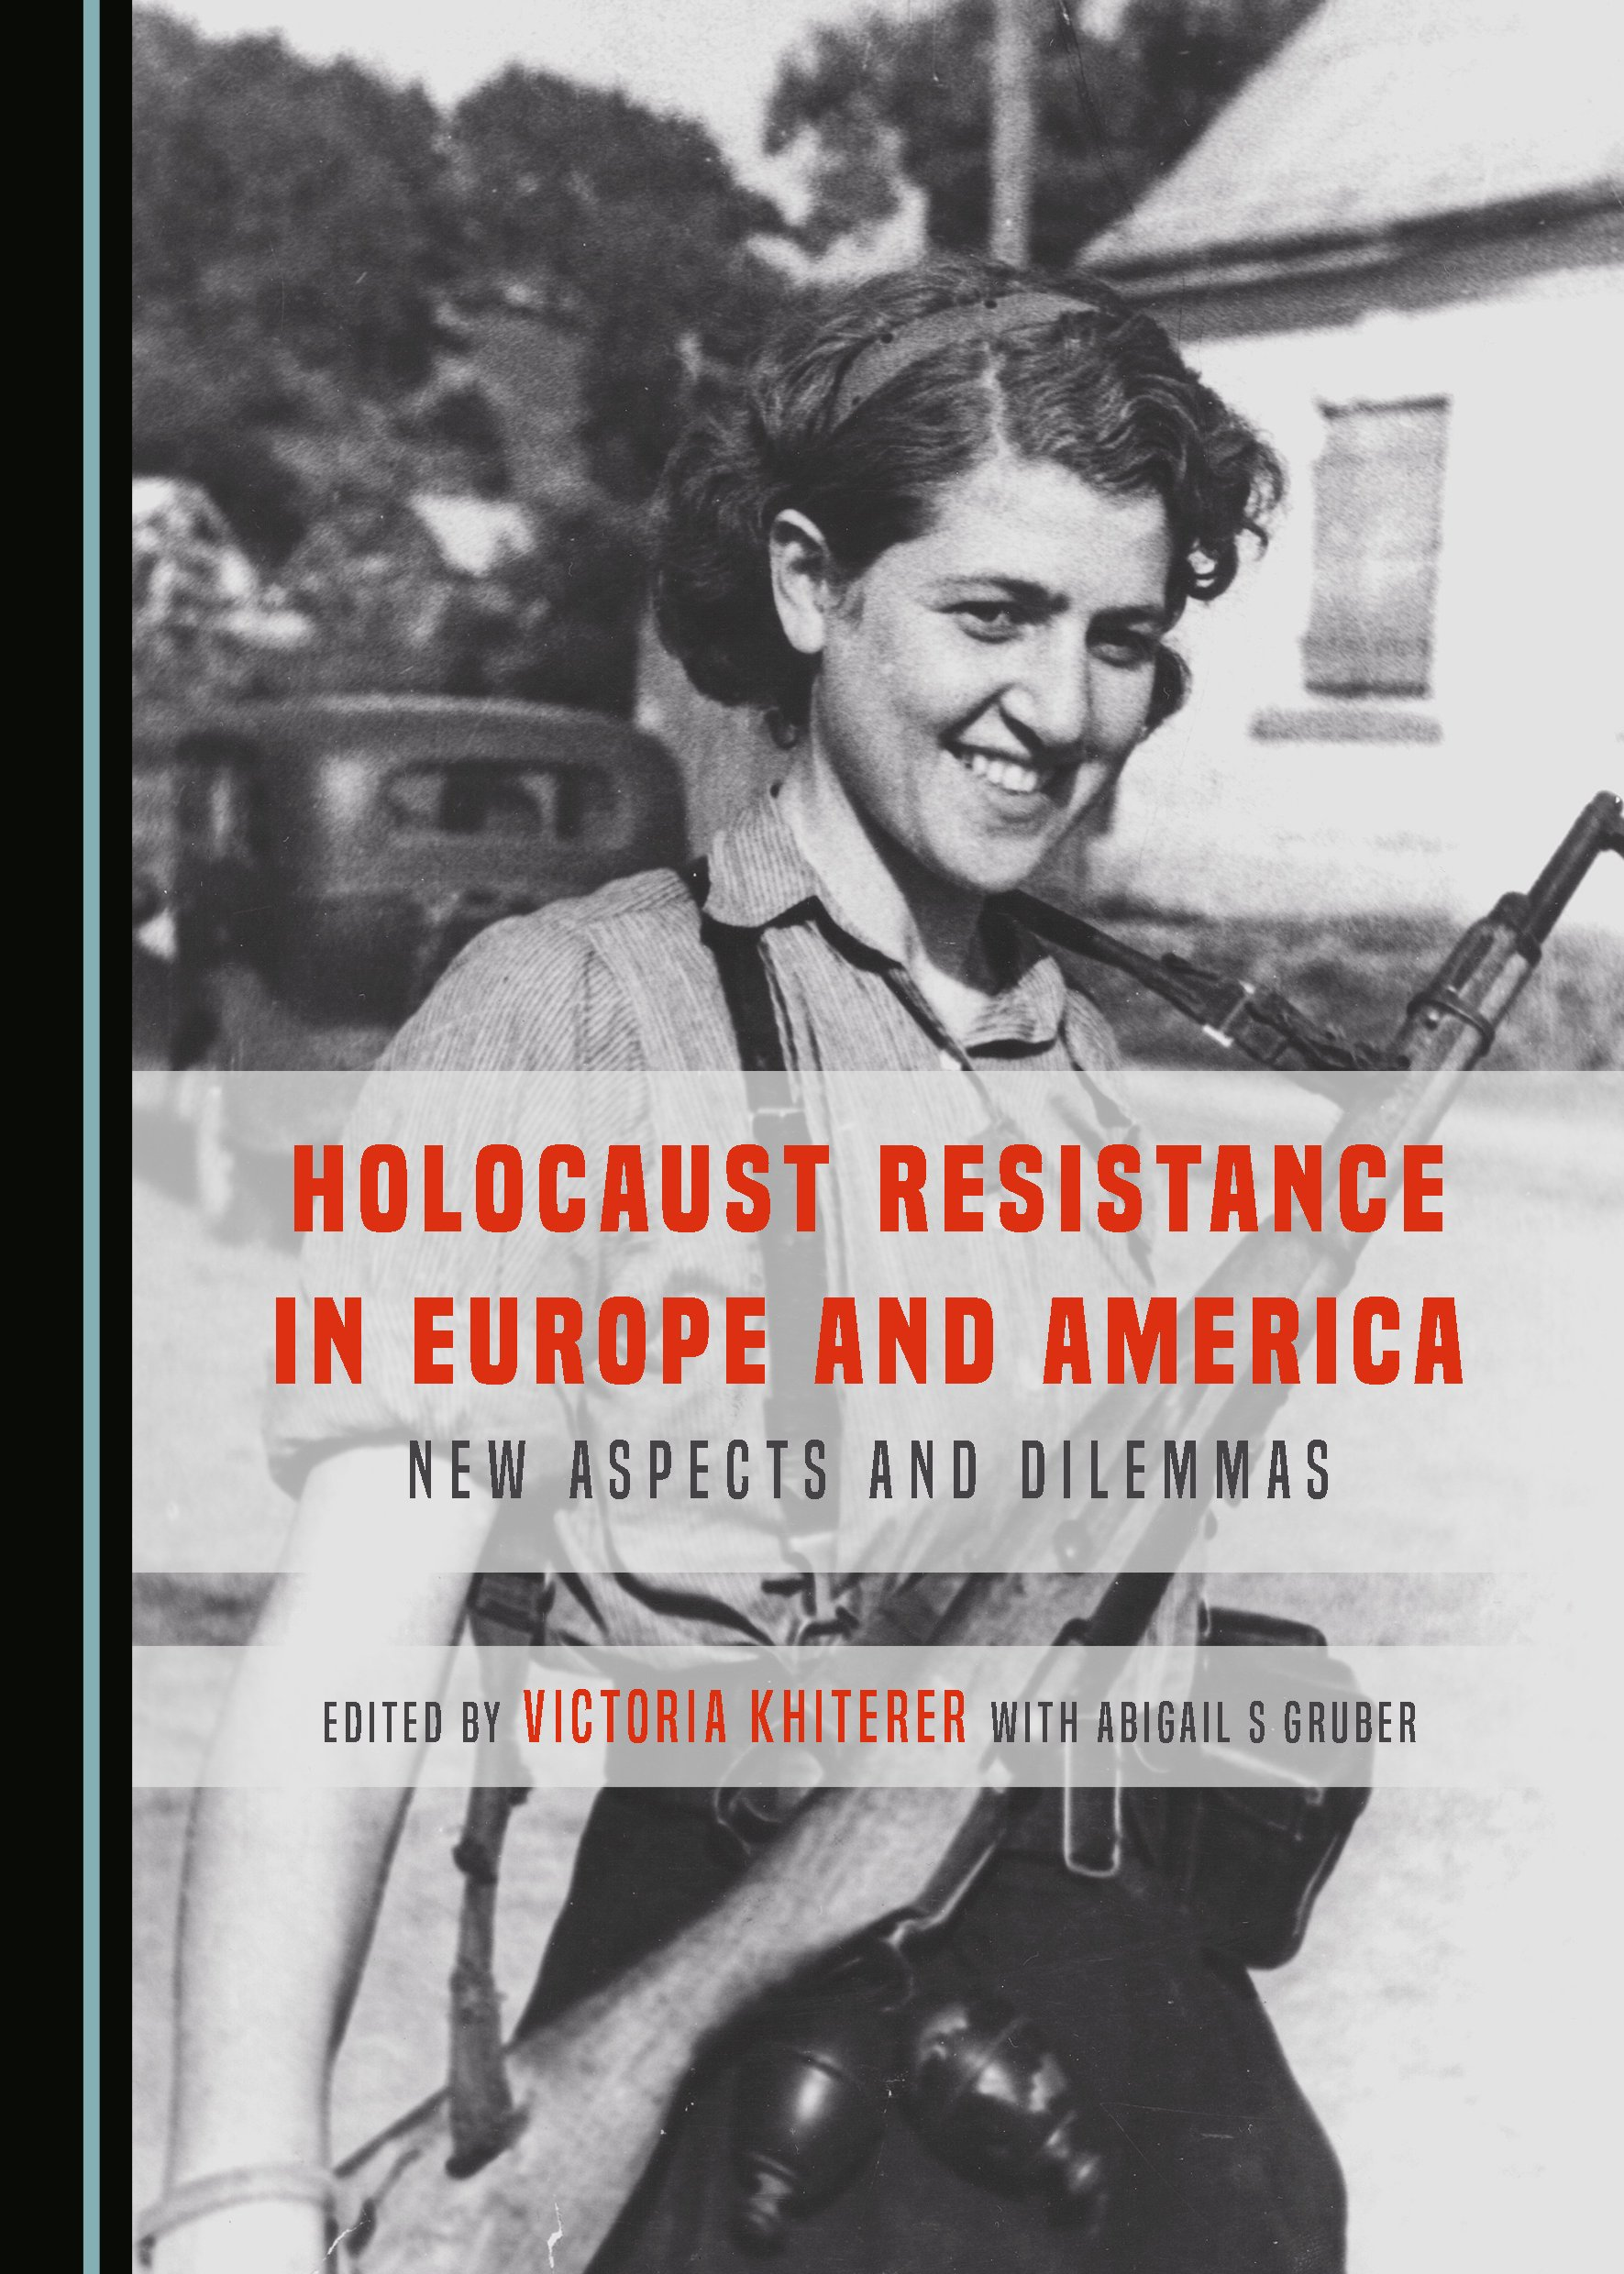 Holocaust Resistance in Europe and America: New Aspects and Dilemmas